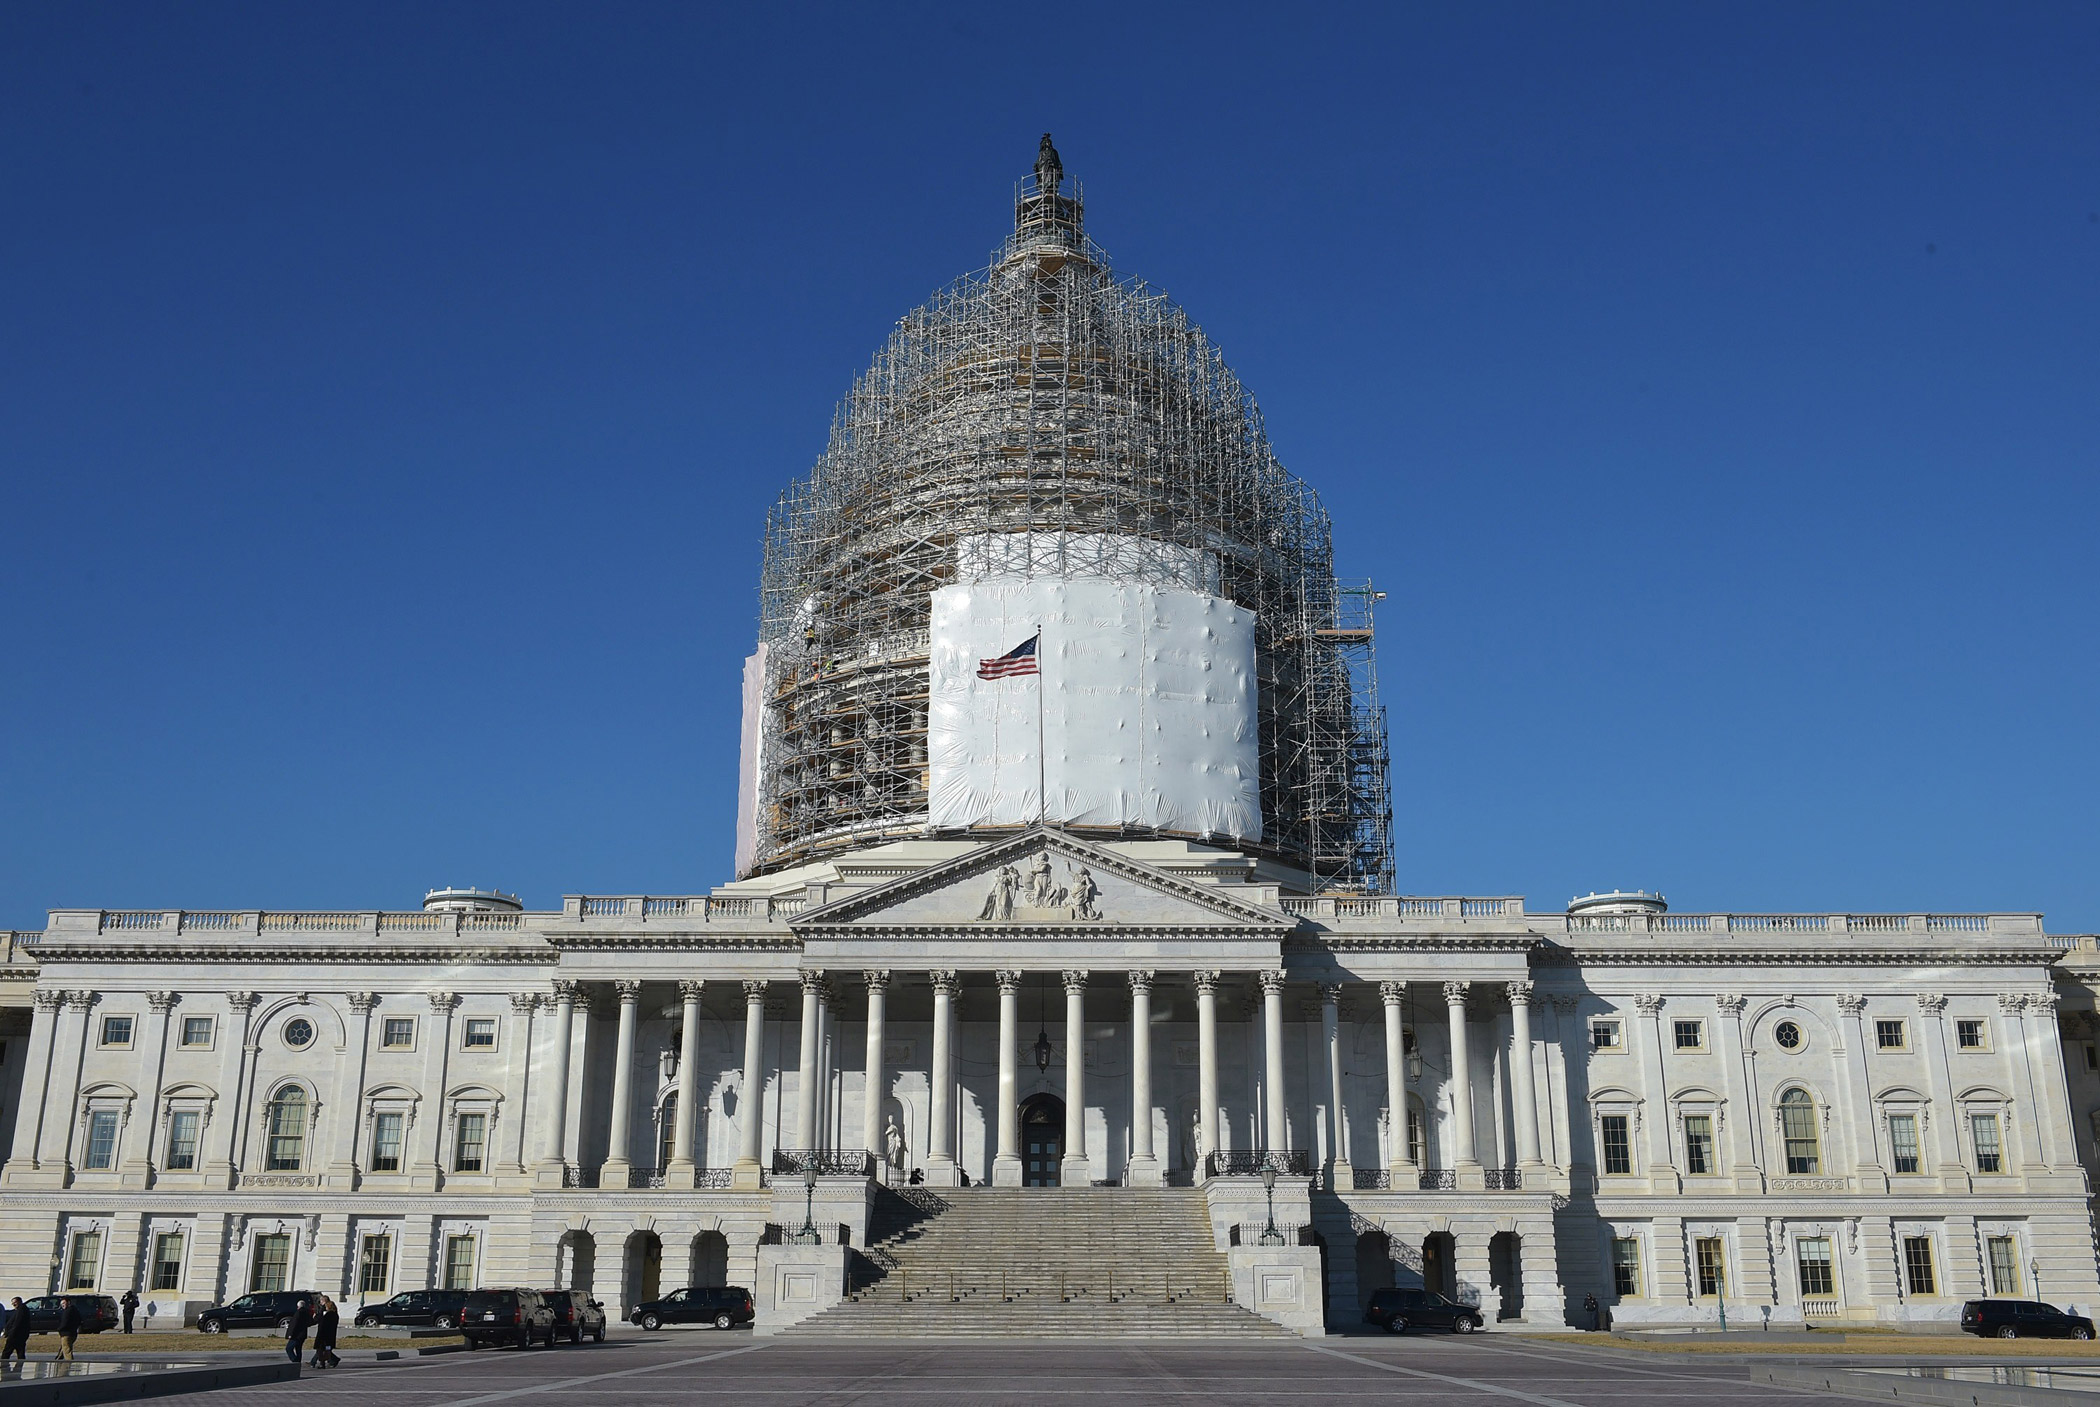 The U.S. Capitol dome, encased in scaffolding, is undergoing renovation in 2015.